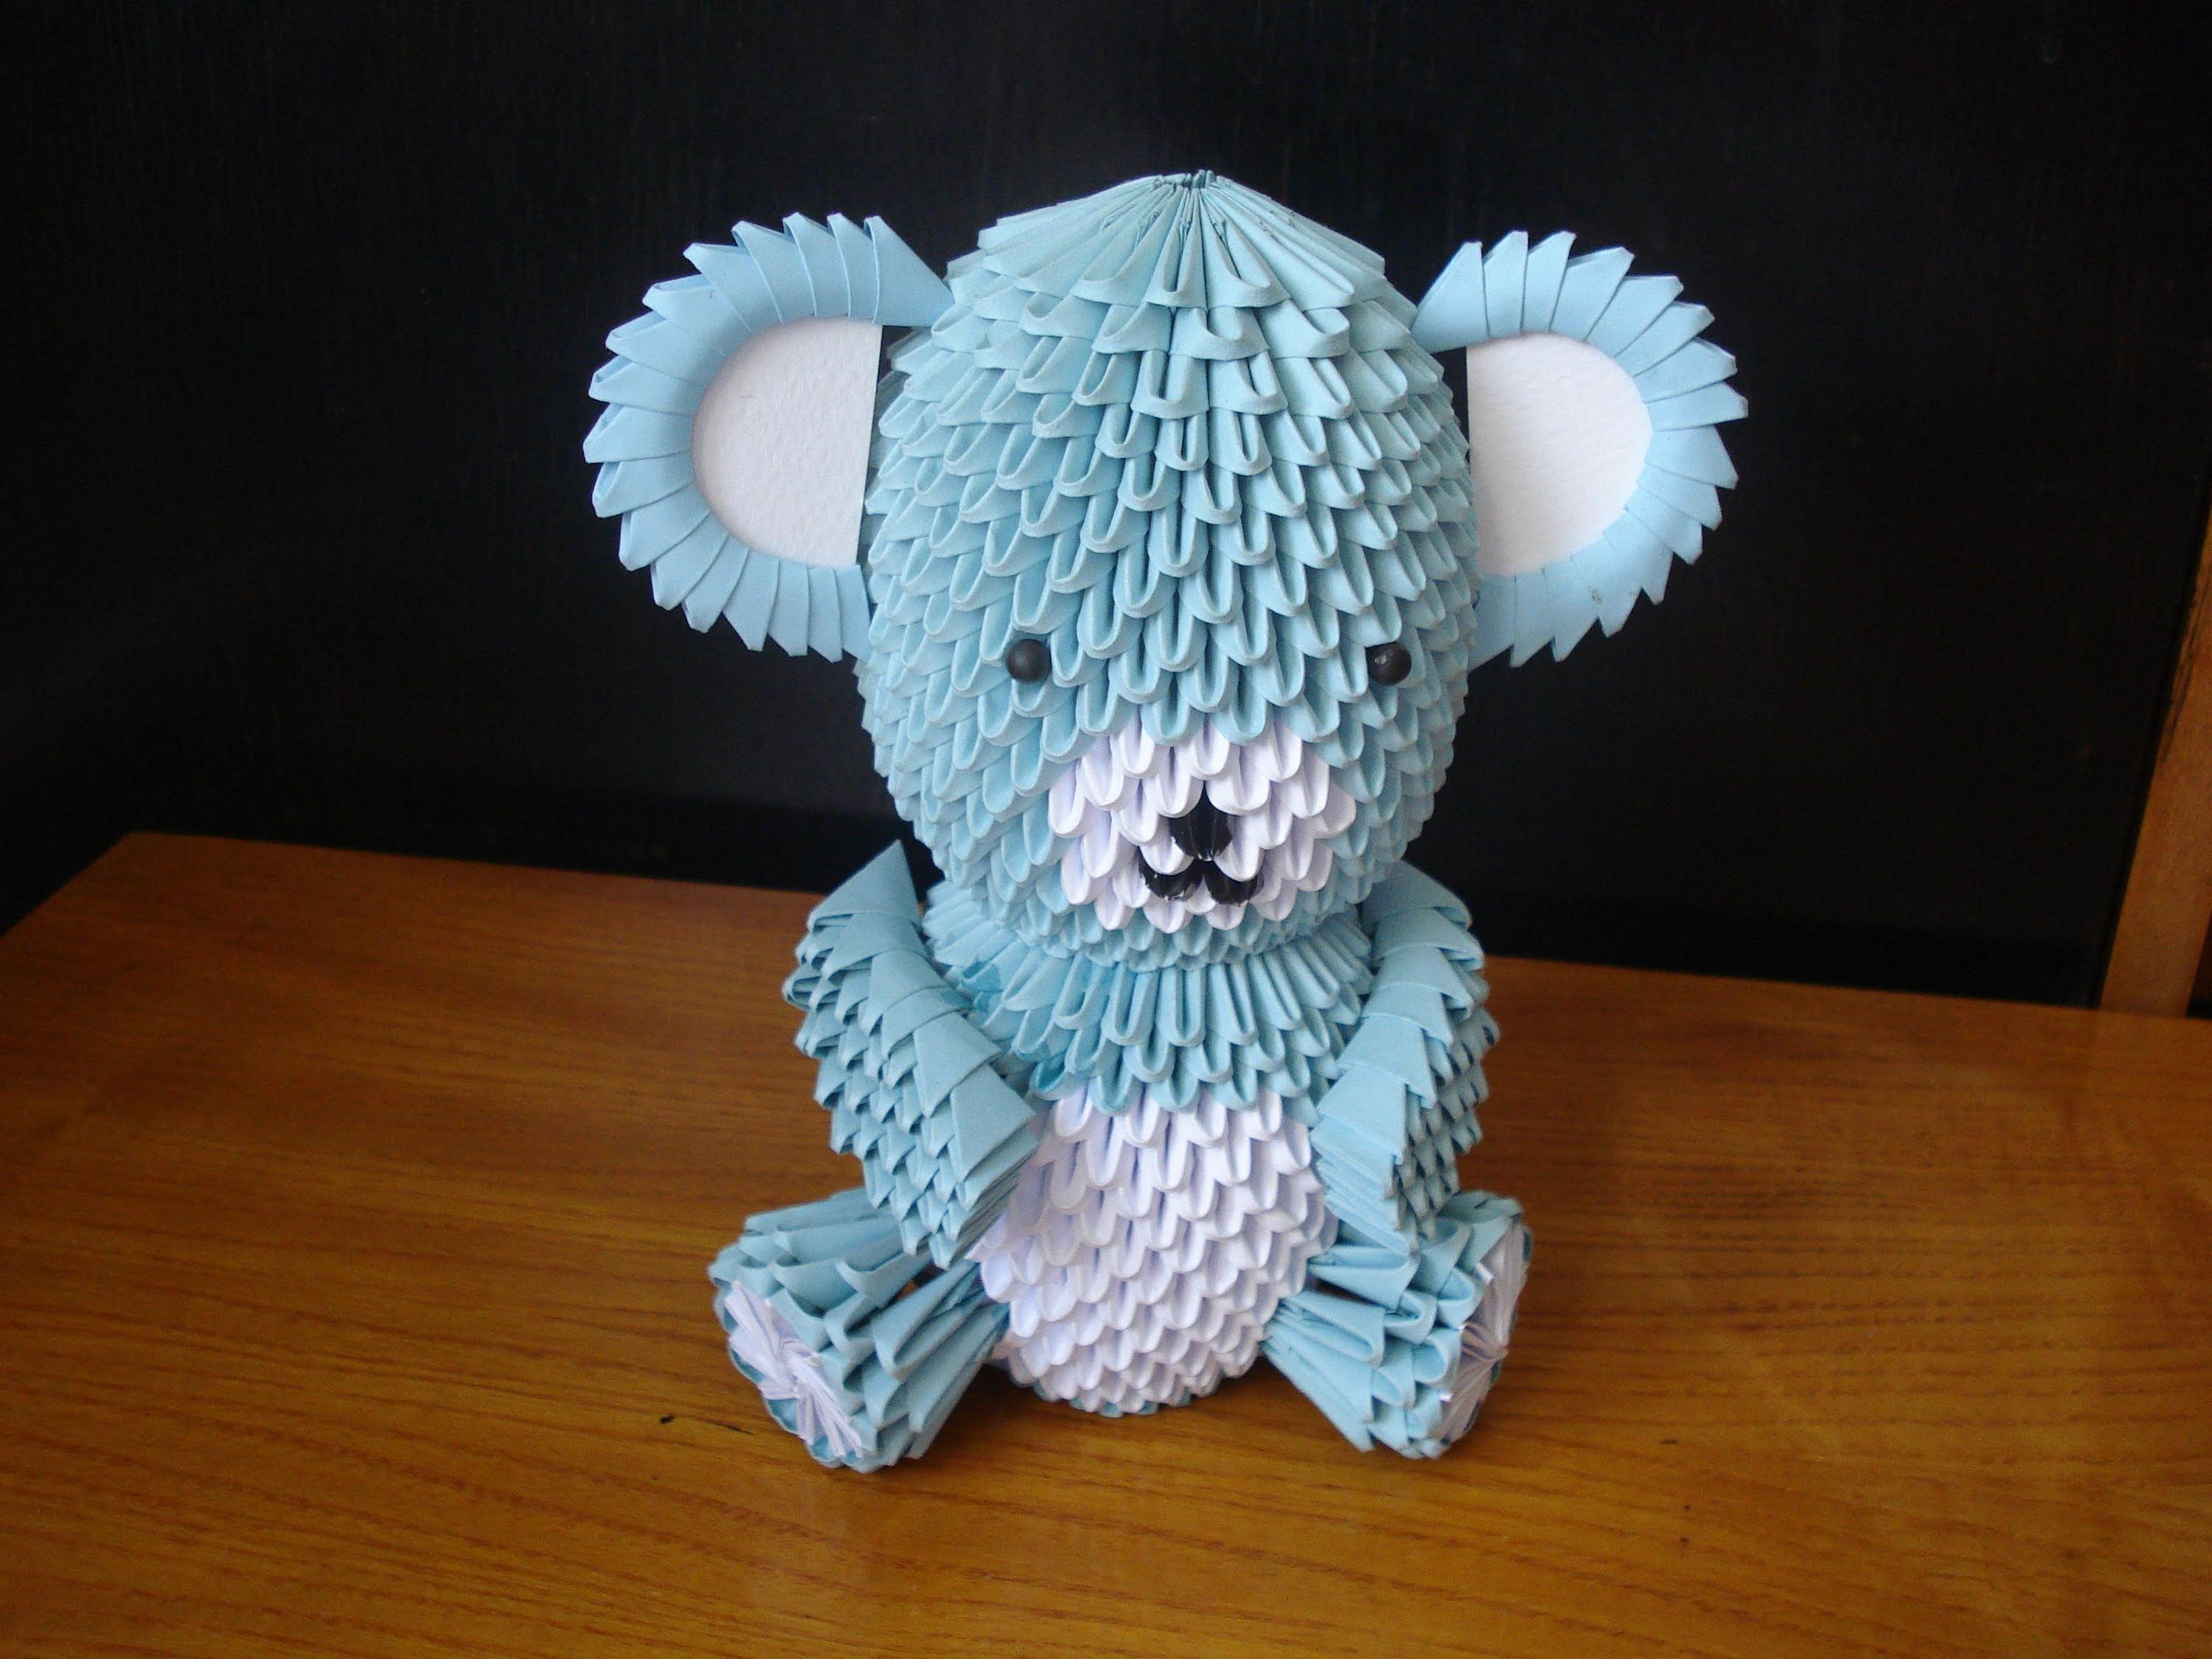 3D Origami Teddy Bear Tutorial - Part 1 | things to make ... - photo#10